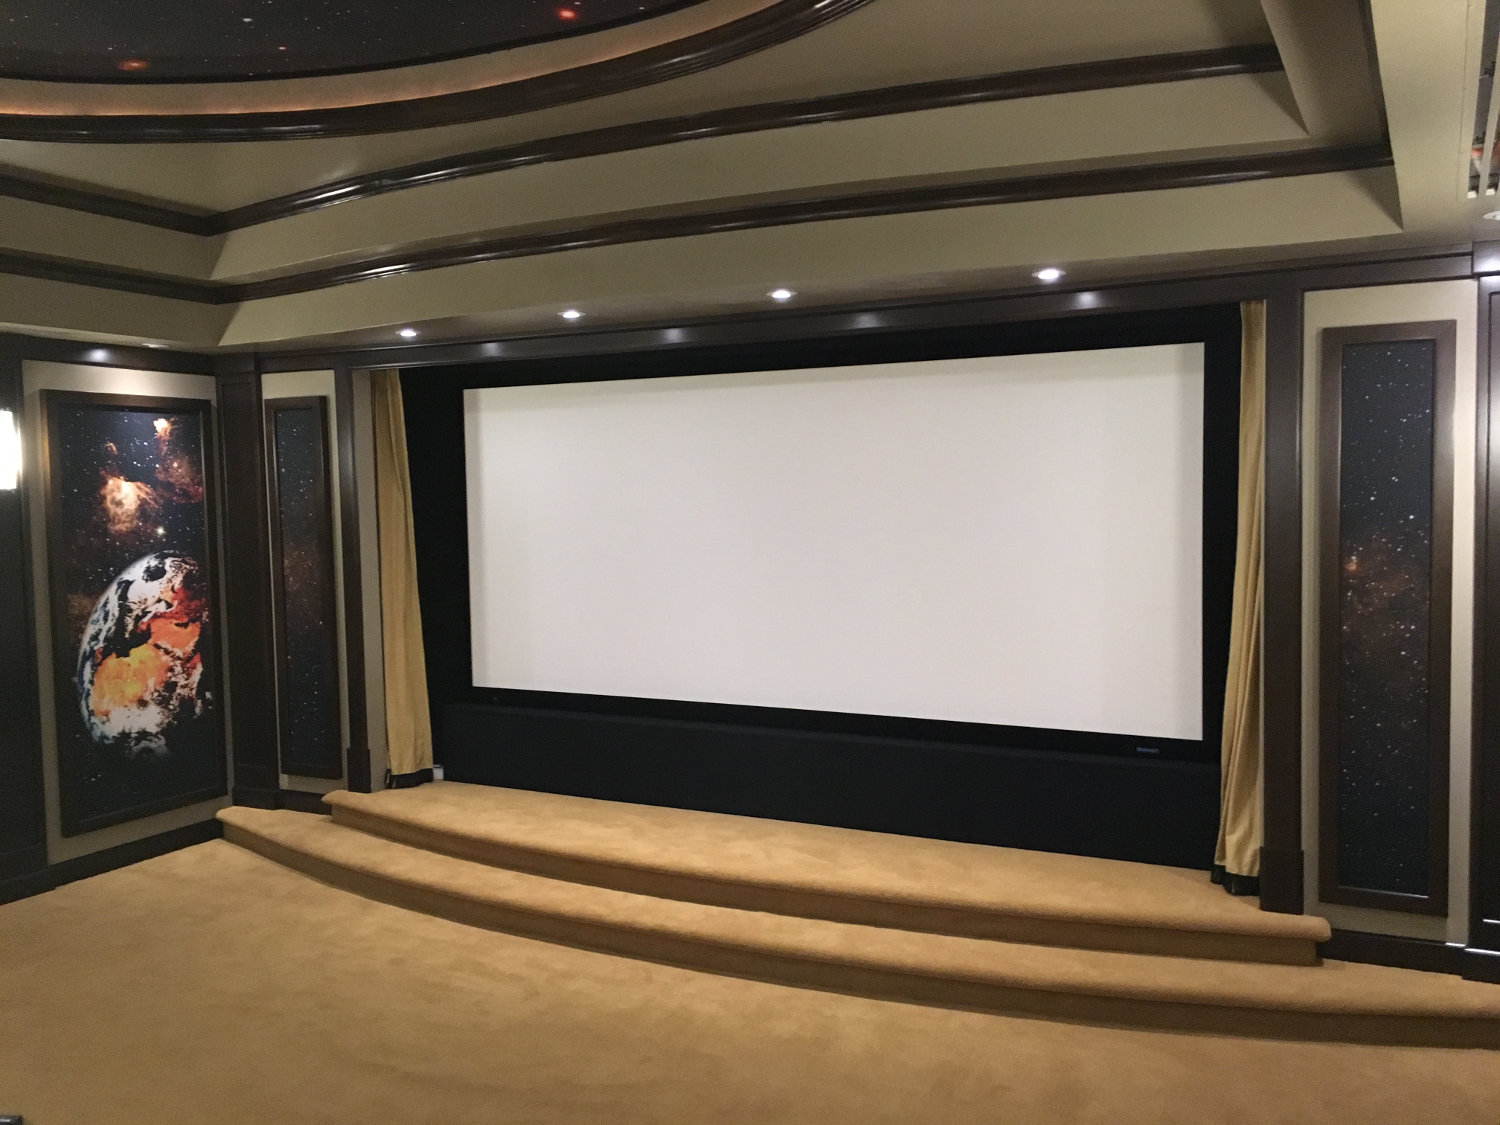 Space-Age Home Theater Sets the Entertainment Bar High - Electronic ...